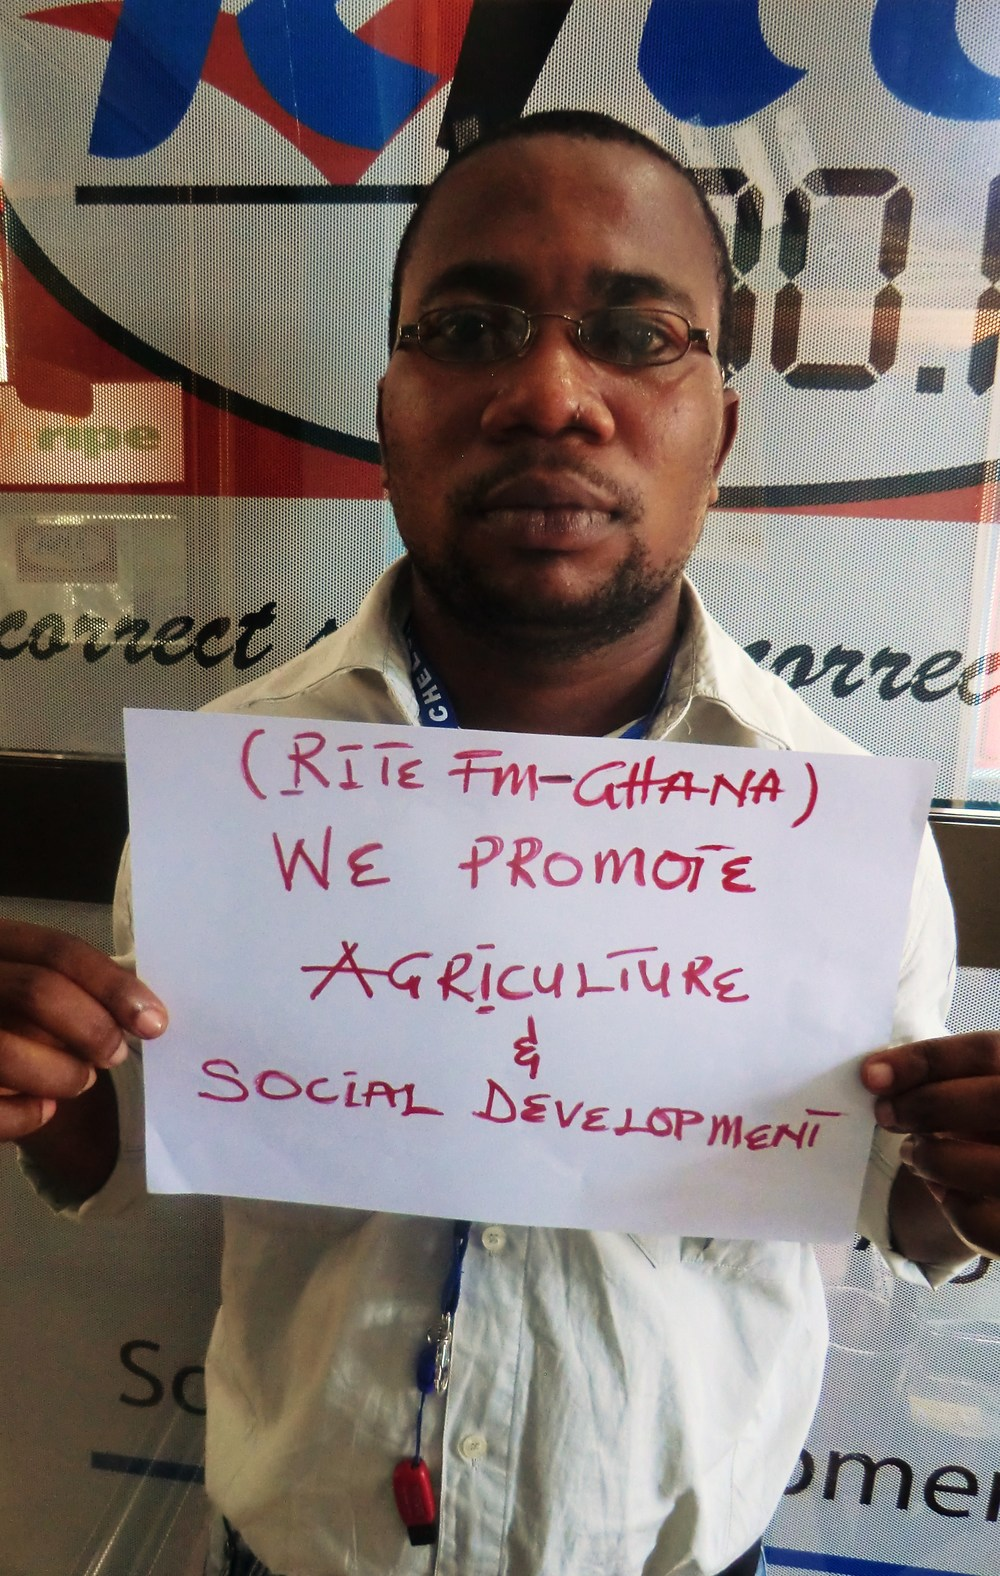 RiteFm: We Promote Agric & Social Development in celebration of FrontlineSMS 7th birthday... send in your photo with what you use FrontlineSMS for.